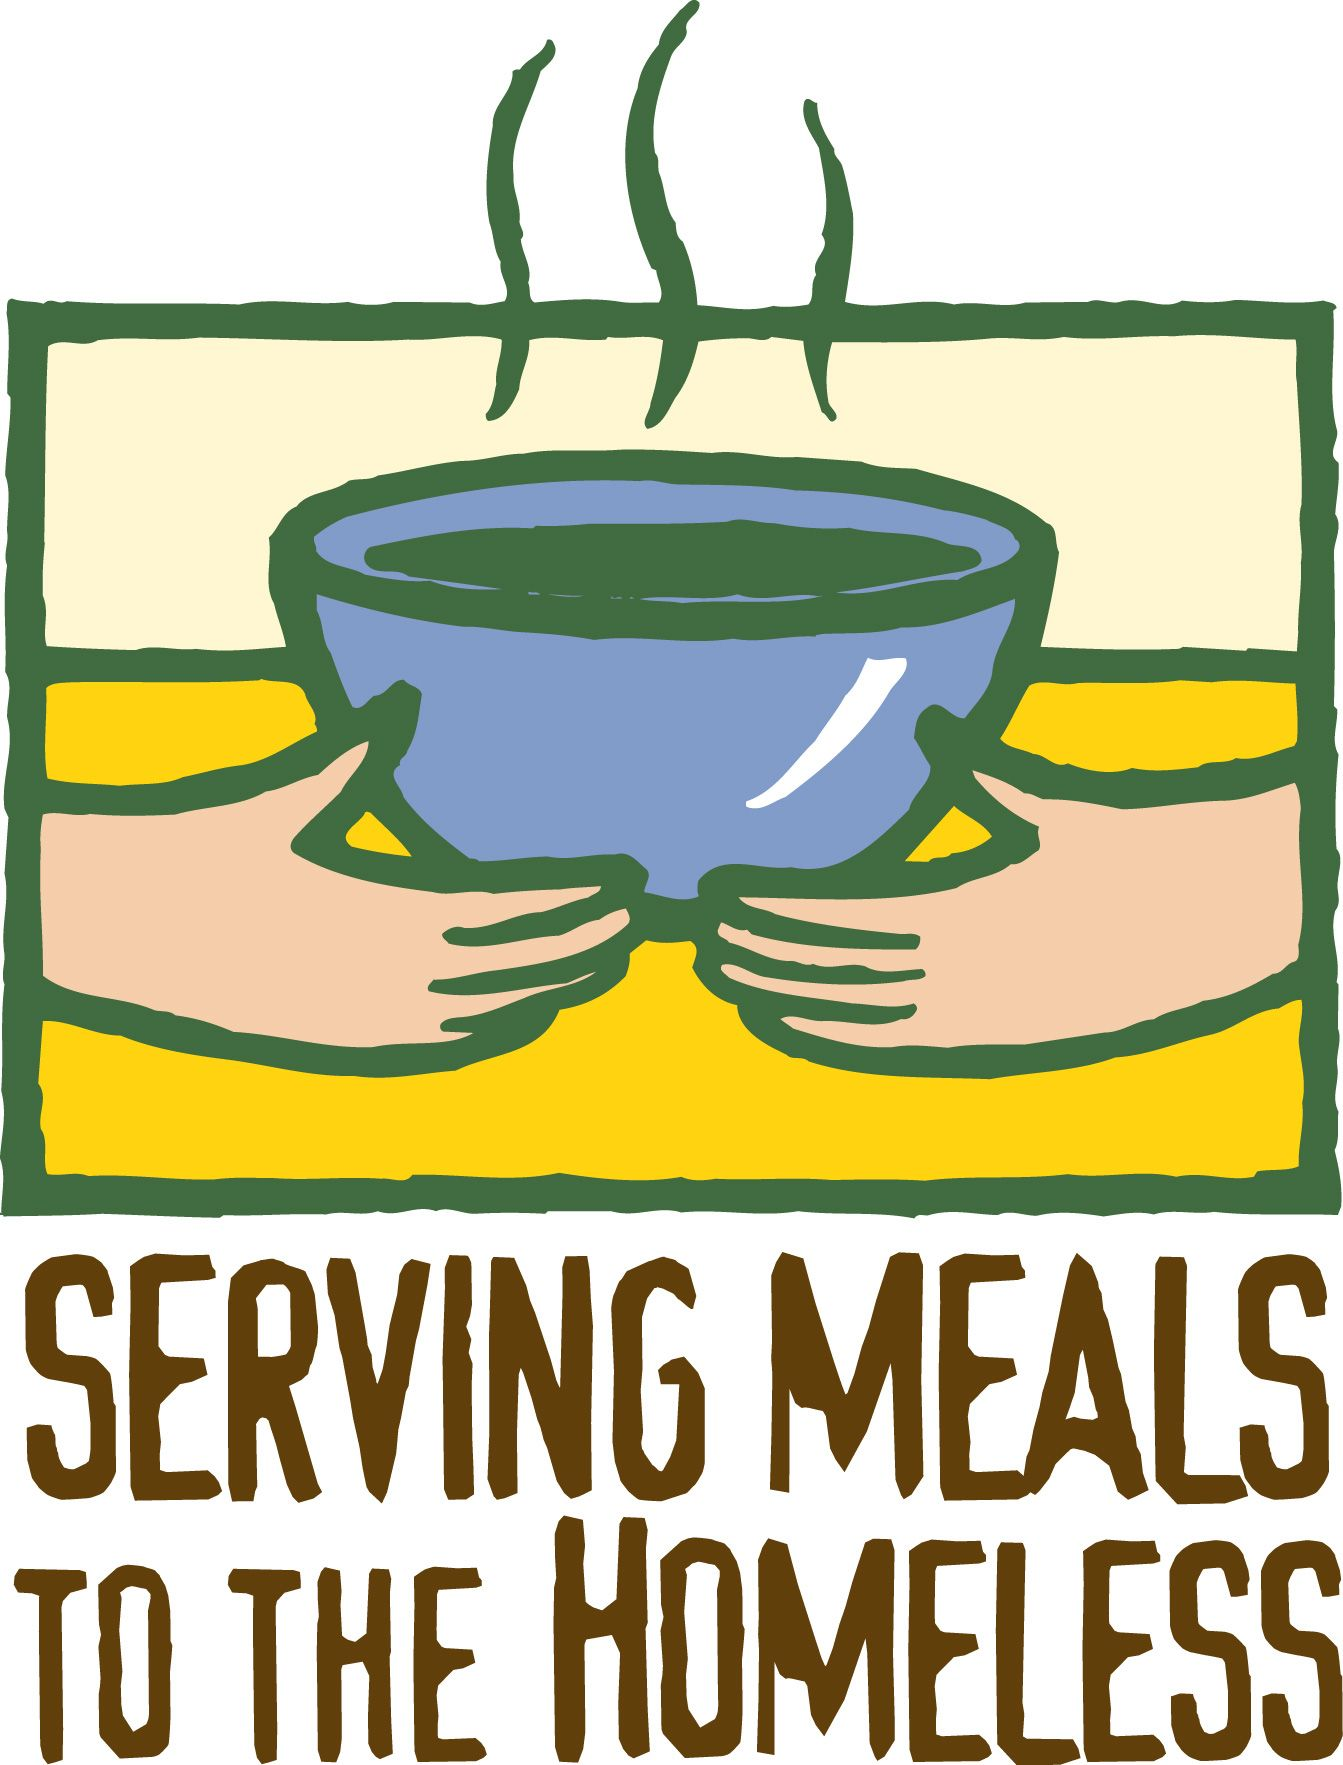 Images of soup kitchens  God bless you The Jacobs Well